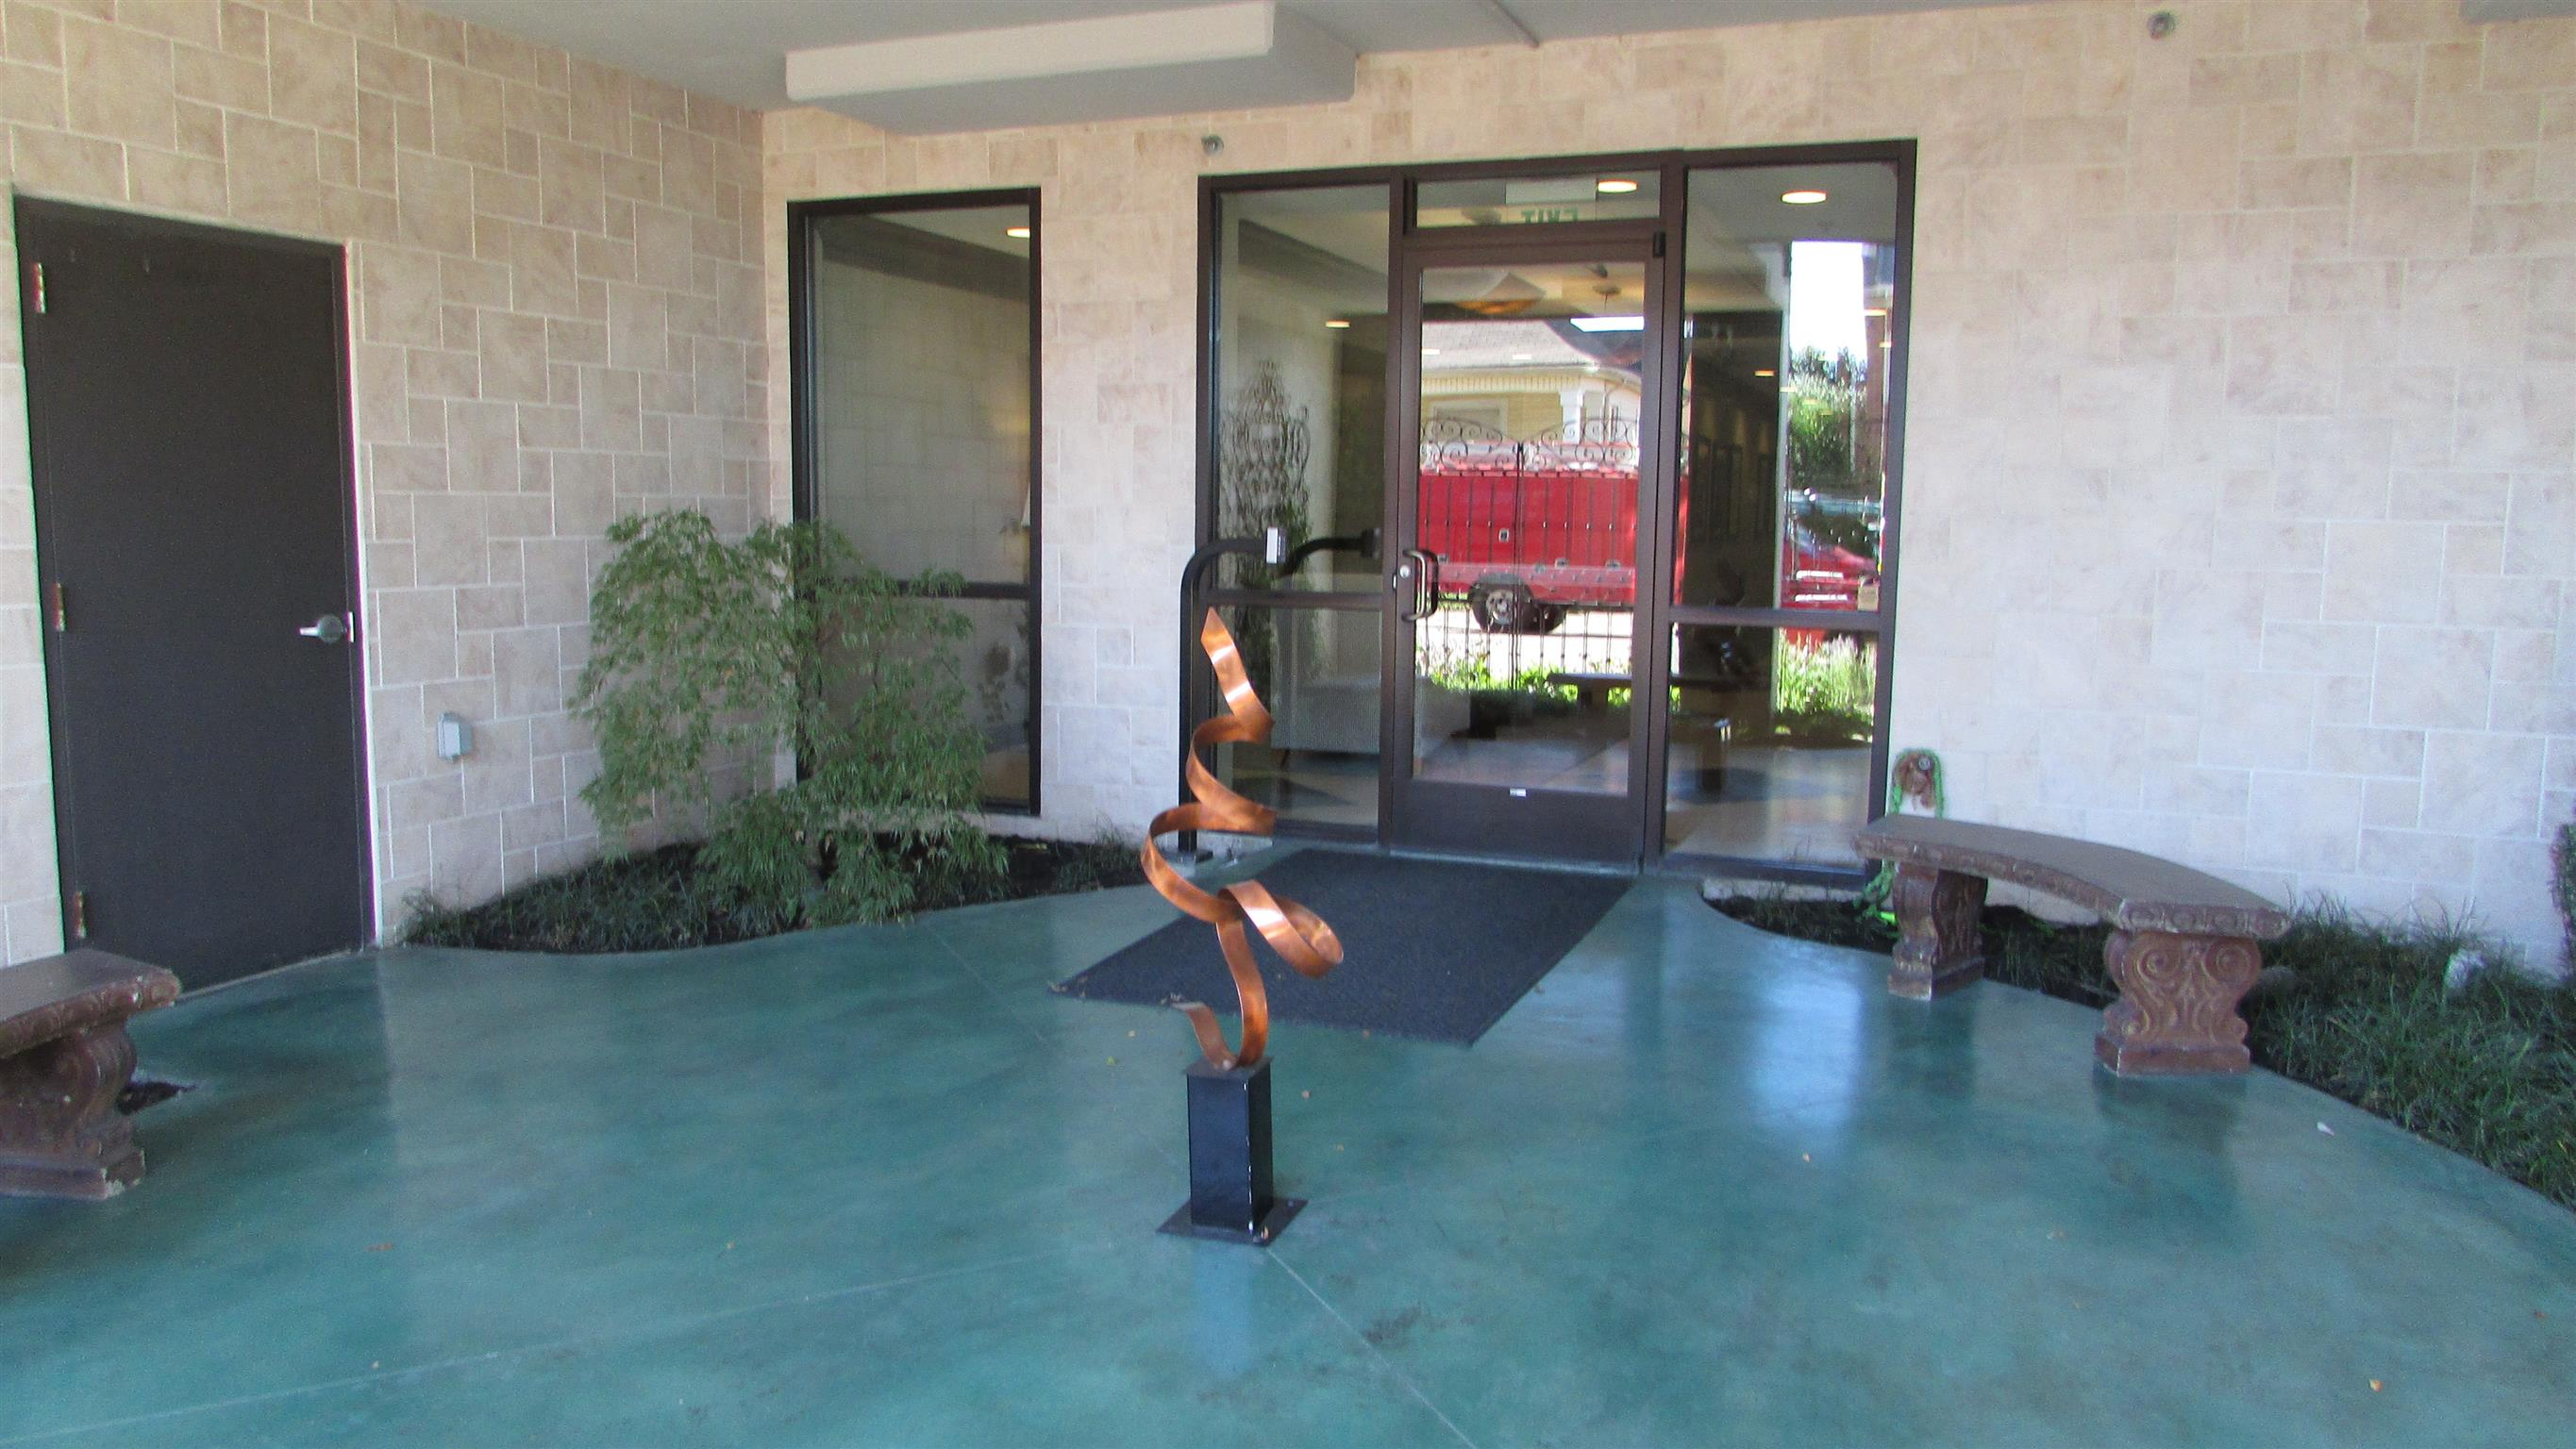 117 30Th Ave Apt 405, N, Nashville - Midtown in Davidson County County, TN 37203 Home for Sale